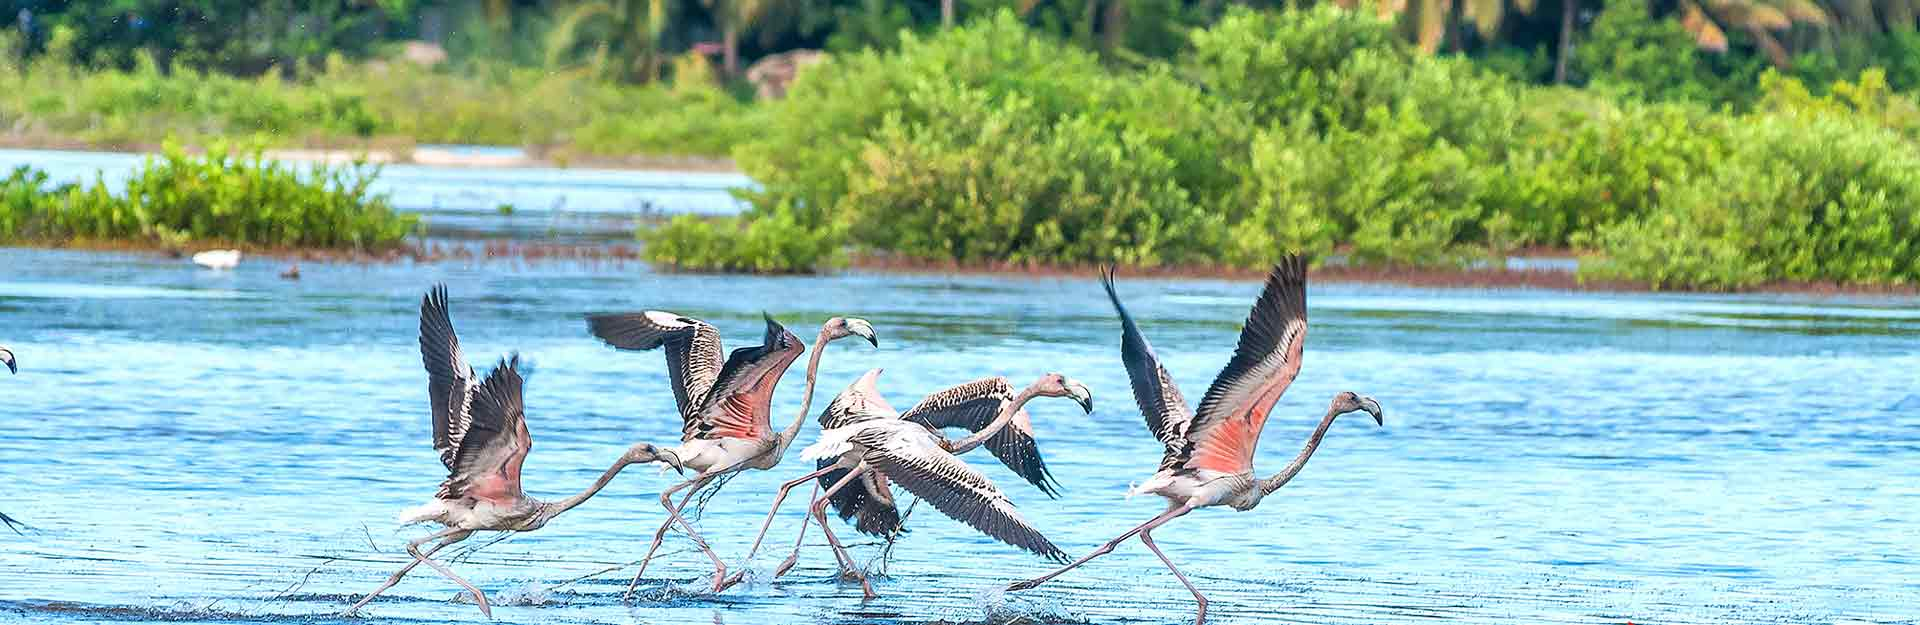 Flamants roses, tourisme de nature, Cuba Travel